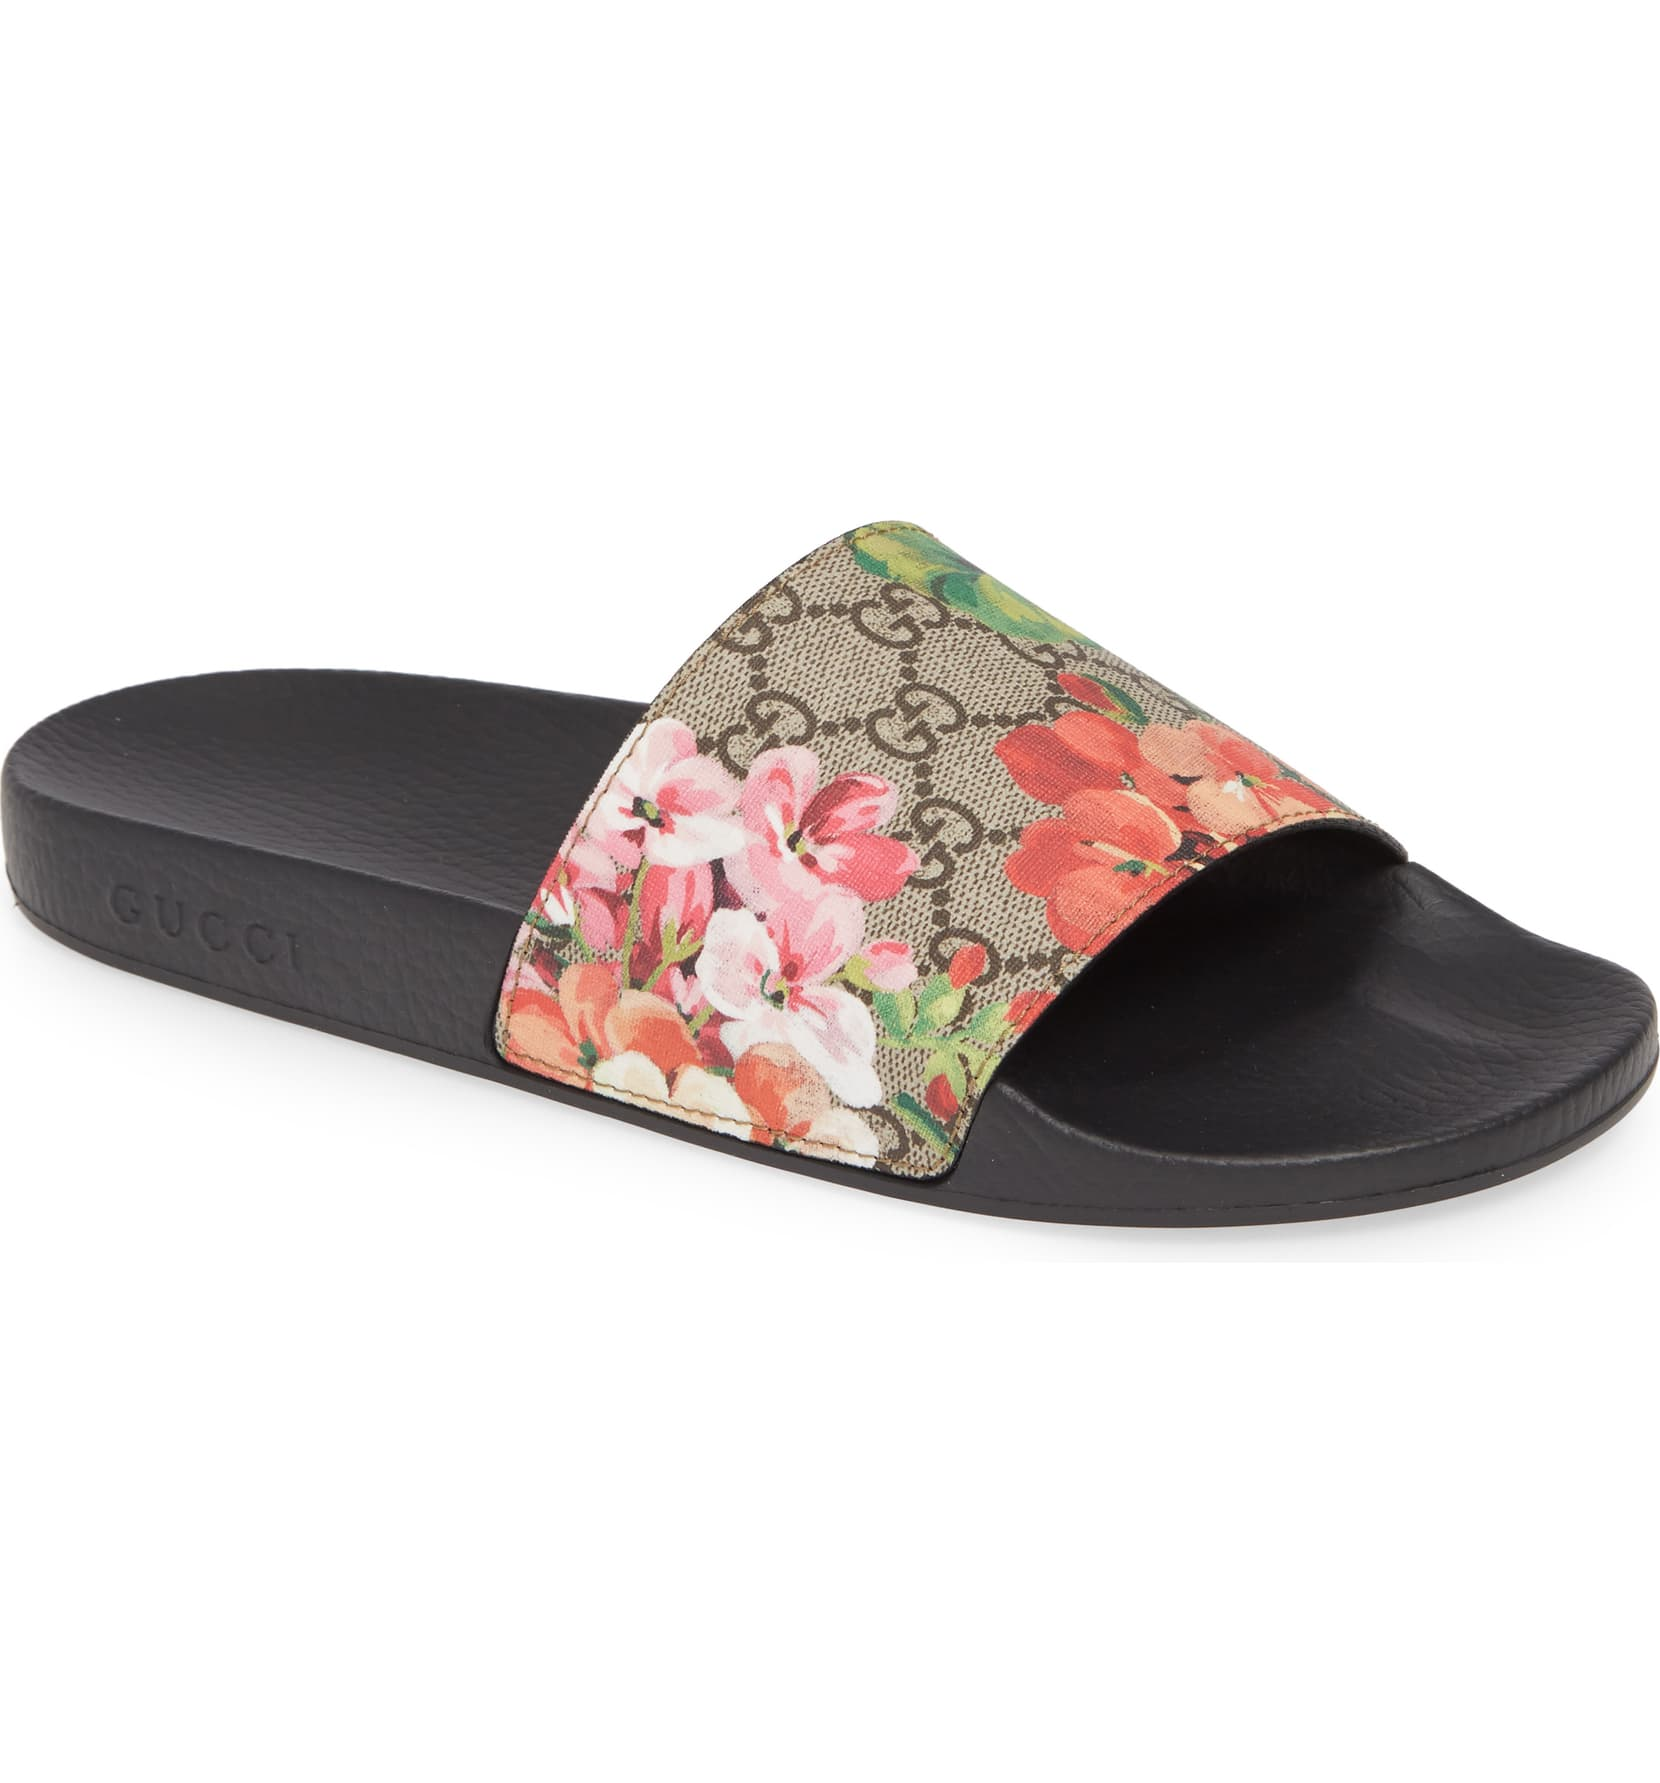 Gucci Bloom Slide Sandal